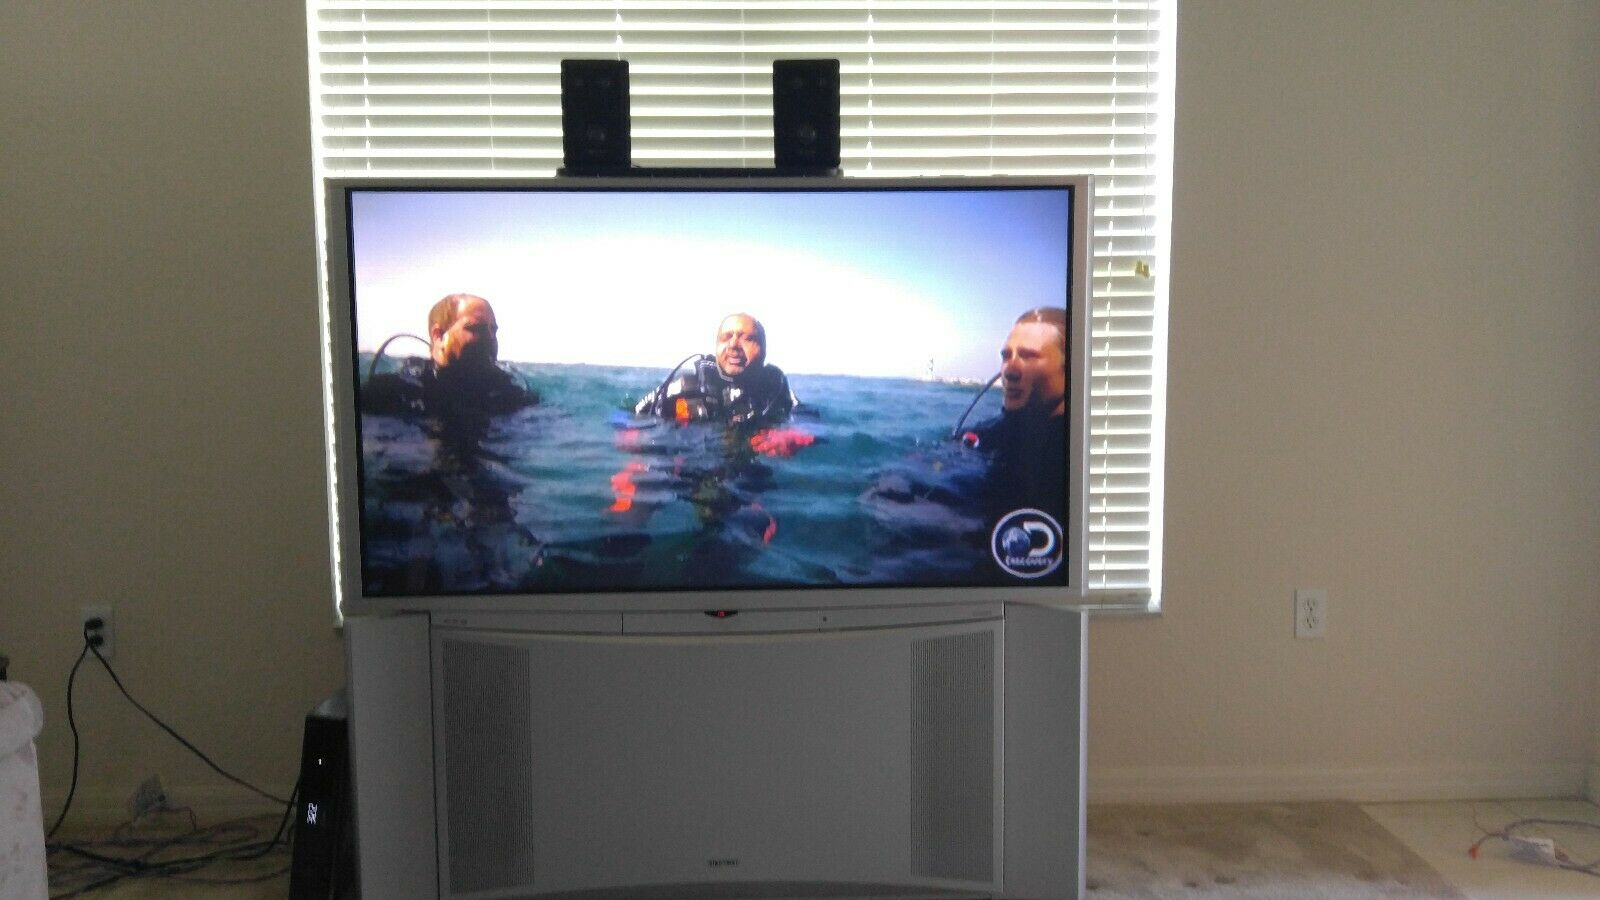 HITACHI WIDE SCREEN PROJECTION TV  MODEL 57f510  HI Definition & Surround Sound